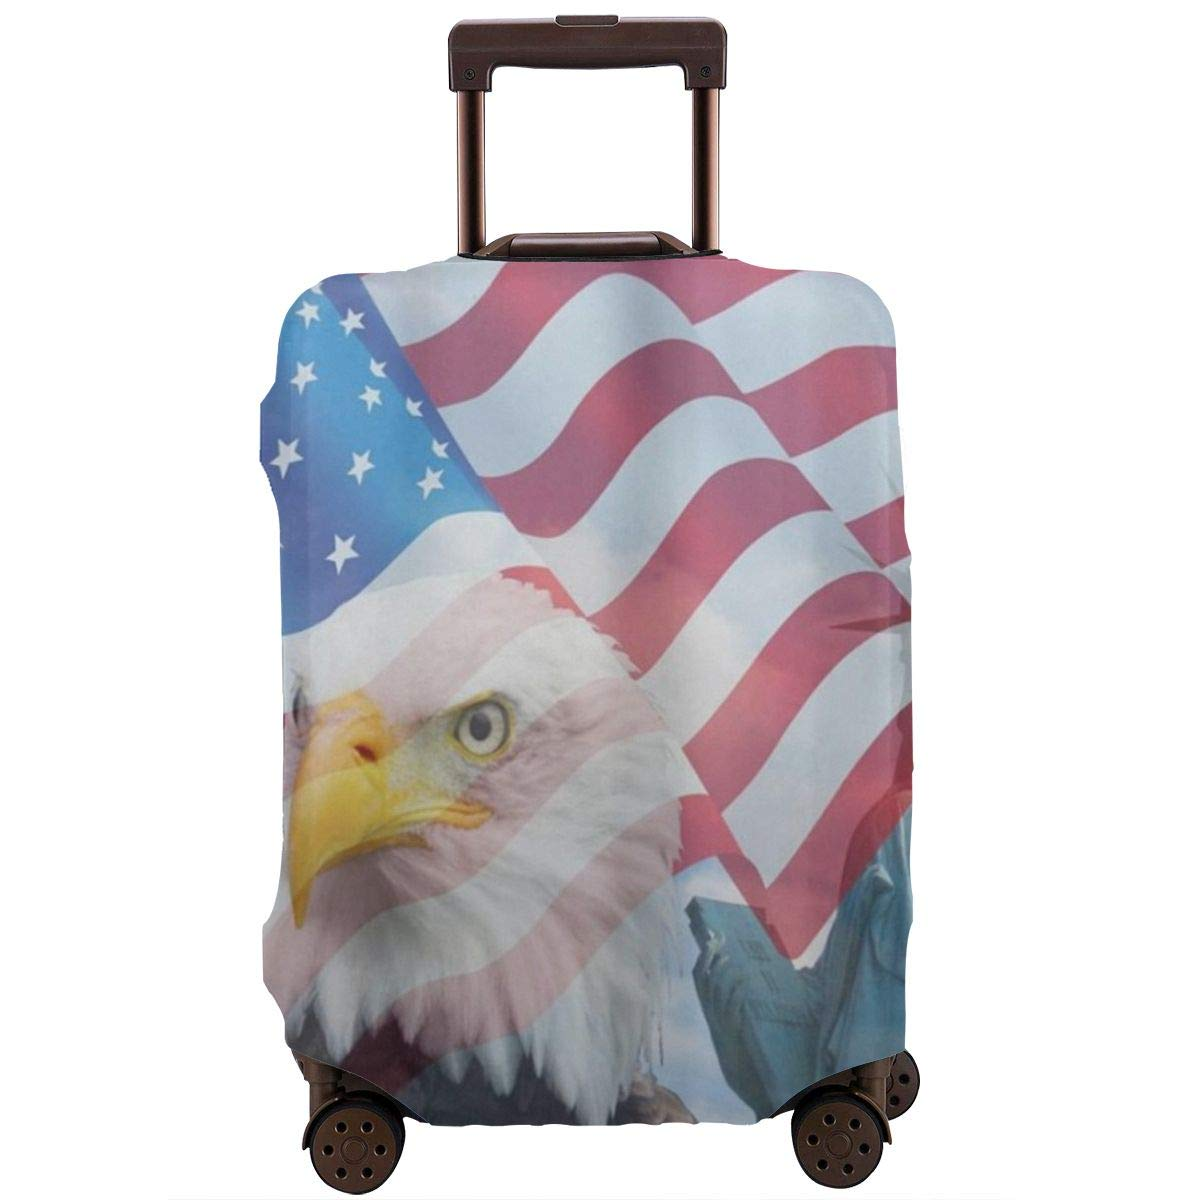 Luggage Cover Status Of Liberty Eagle American Flag Protective Travel Trunk Case Elastic Luggage Suitcase Protector Cover